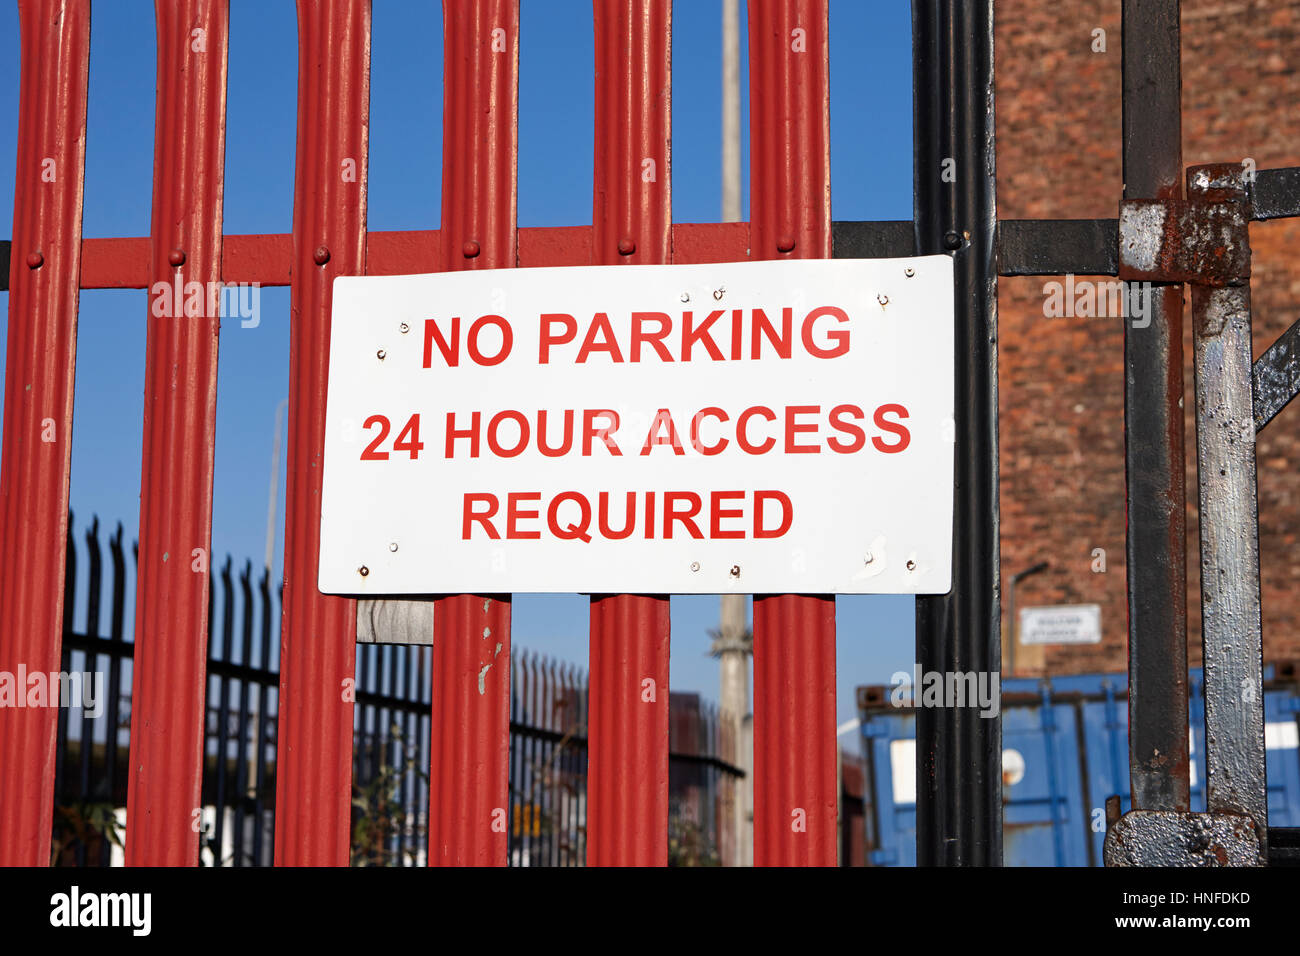 no parking sign 24 hour access required on a fence in the uk - Stock Image